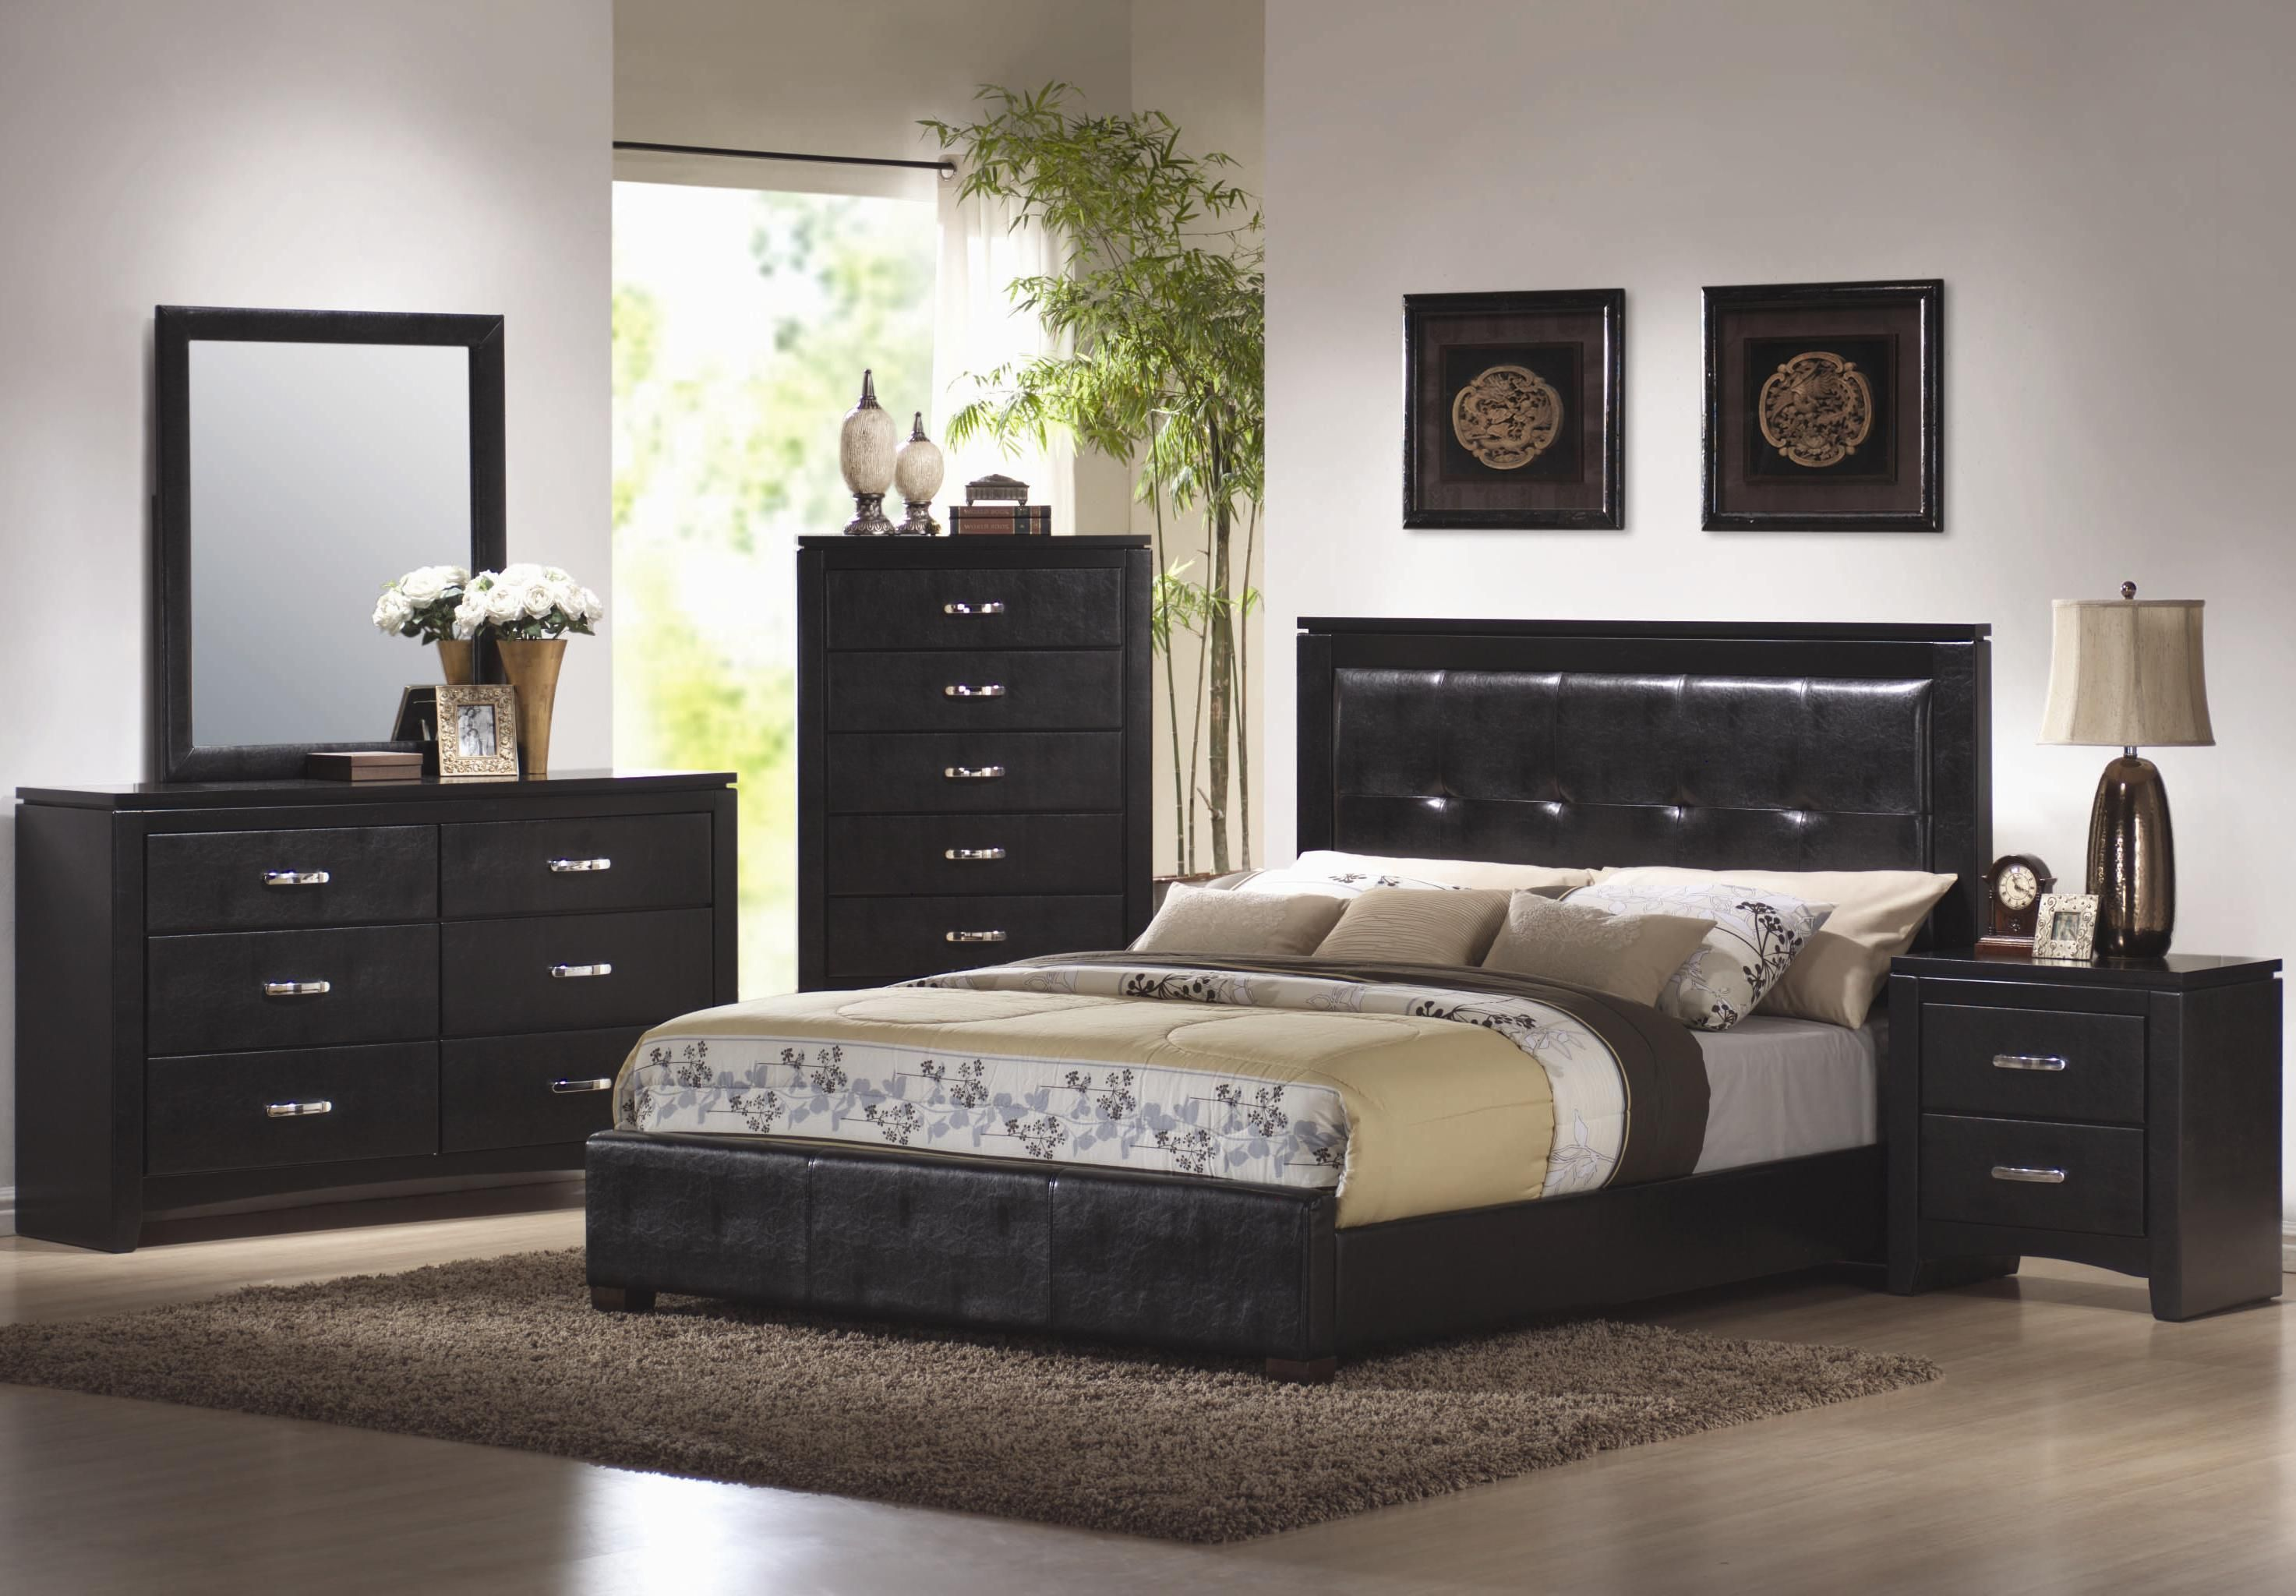 bedroom furniture layout ideas. black king size bedroom furniture sets for more pictures and design ideas please visit my layout